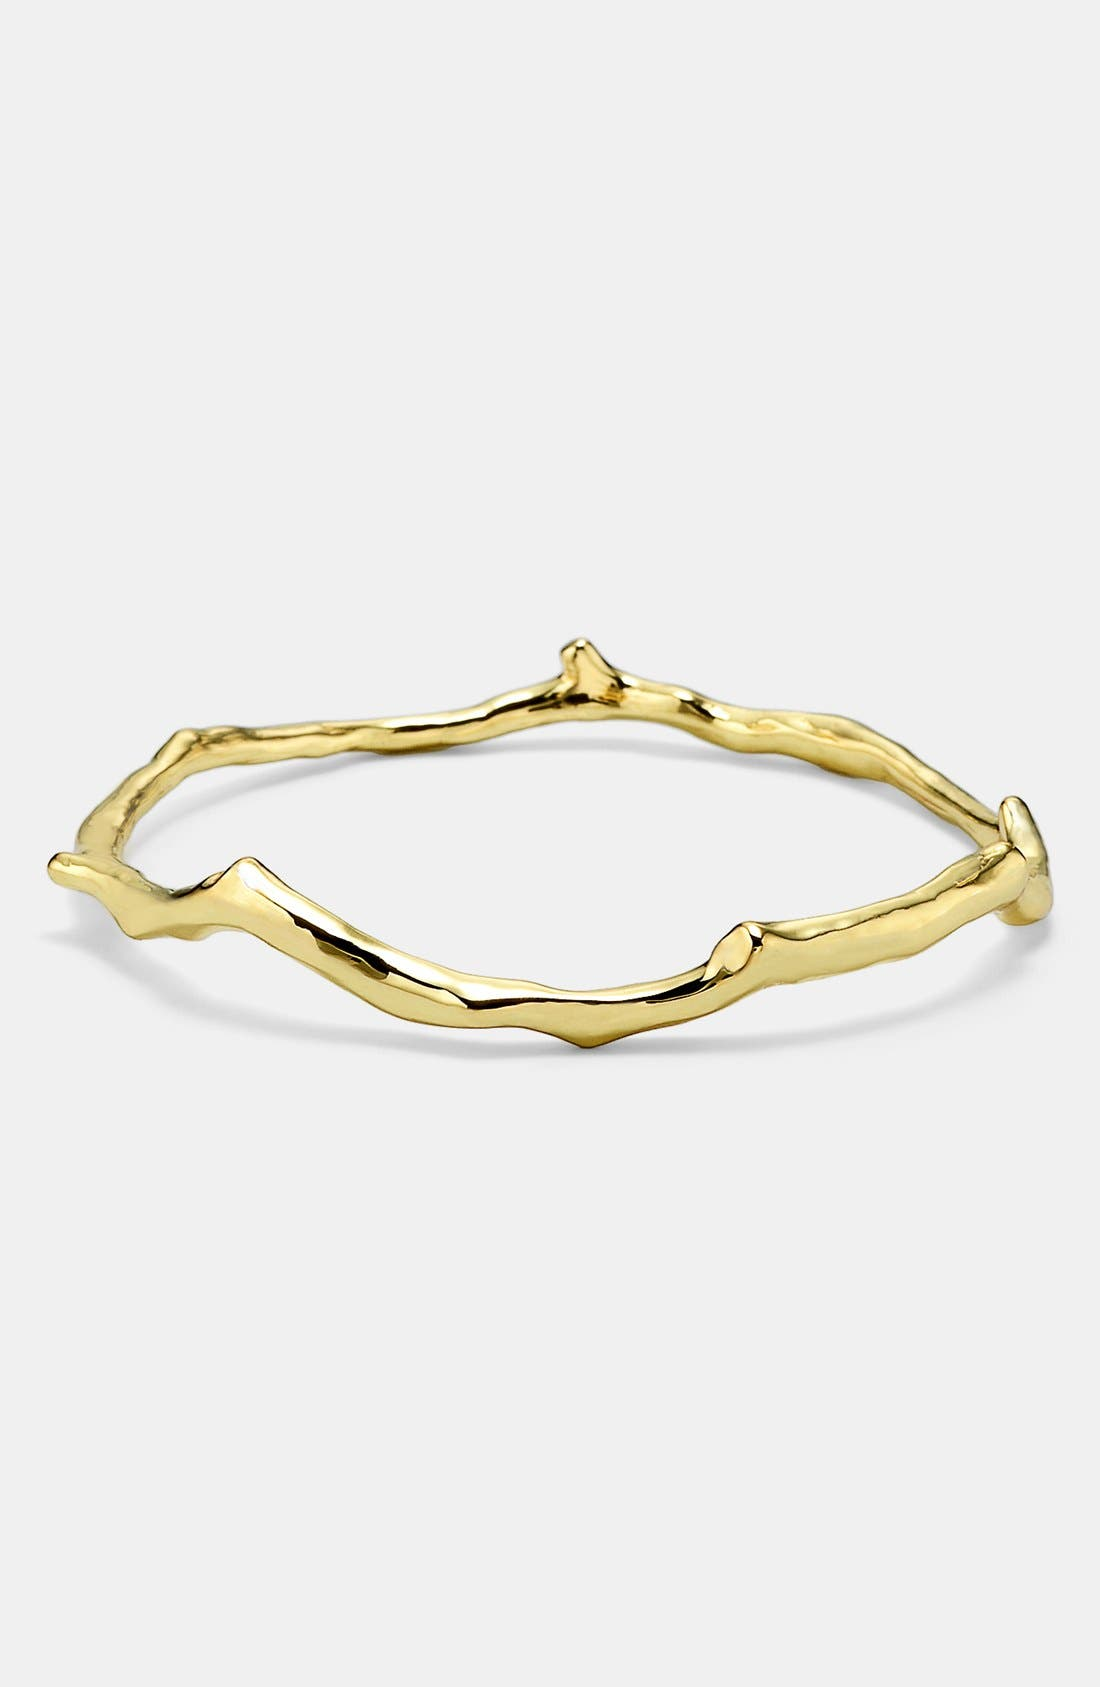 Alternate Image 1 Selected - Ippolita 'Glamazon - Reef' 18k Gold Bangle